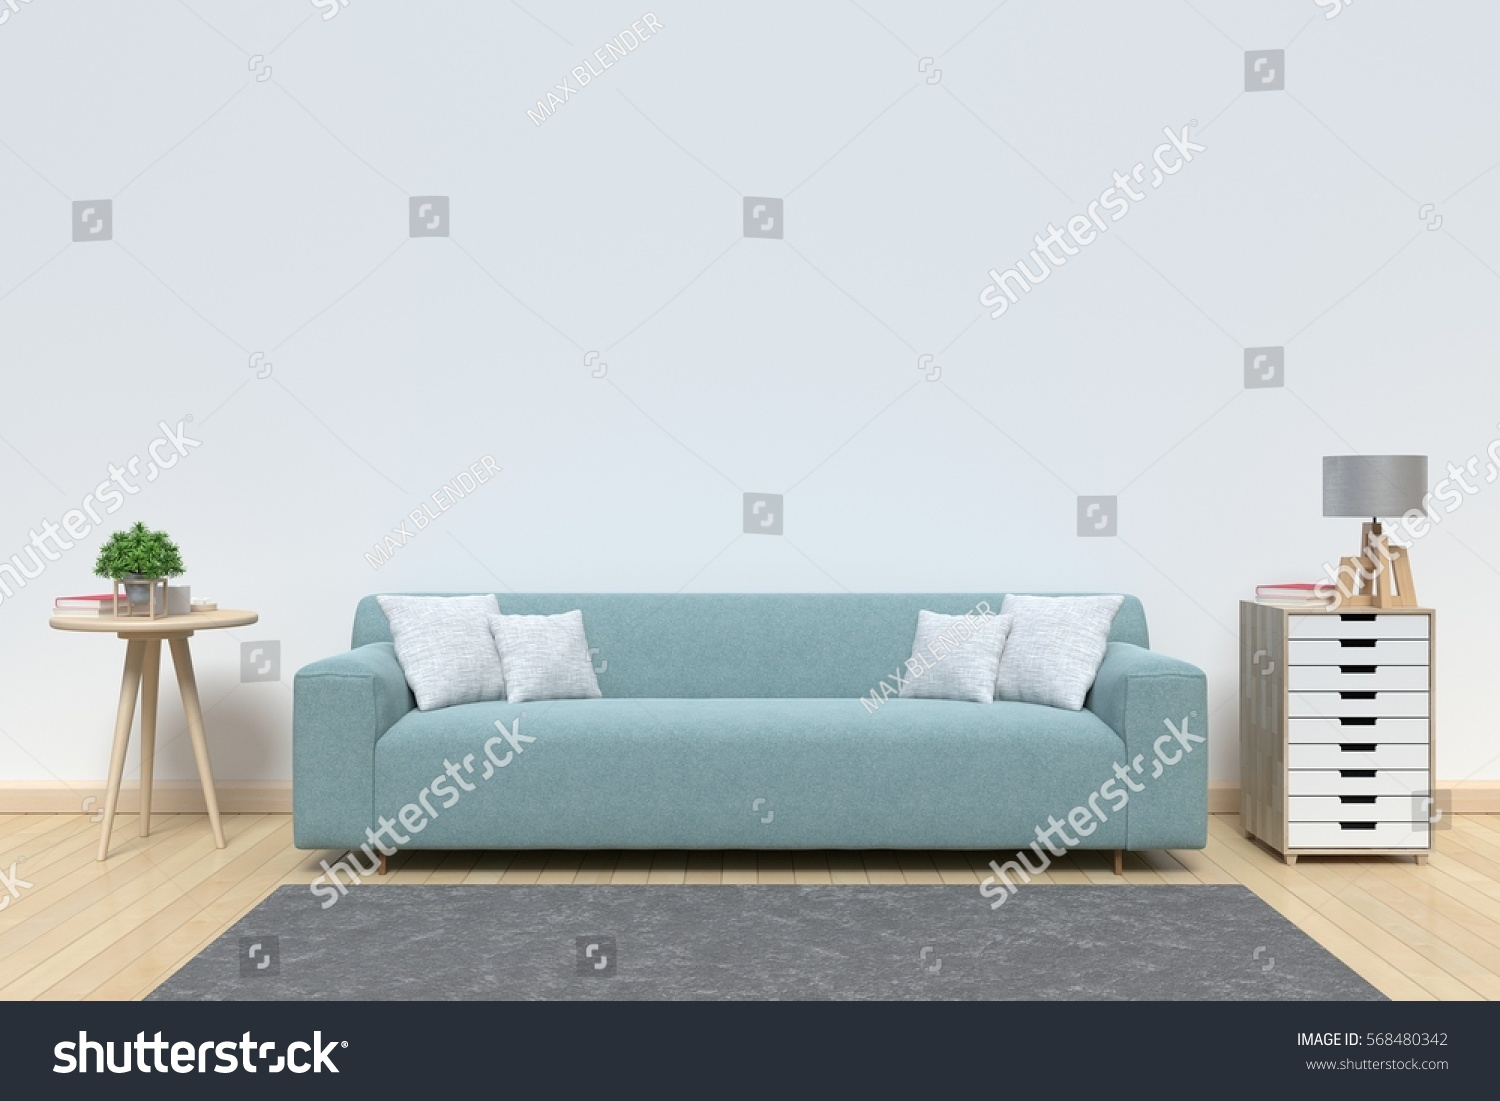 living room sofa have pillows lamp stock illustration 568480342 living room with sofa have pillows lamp books and vase with flowers on white